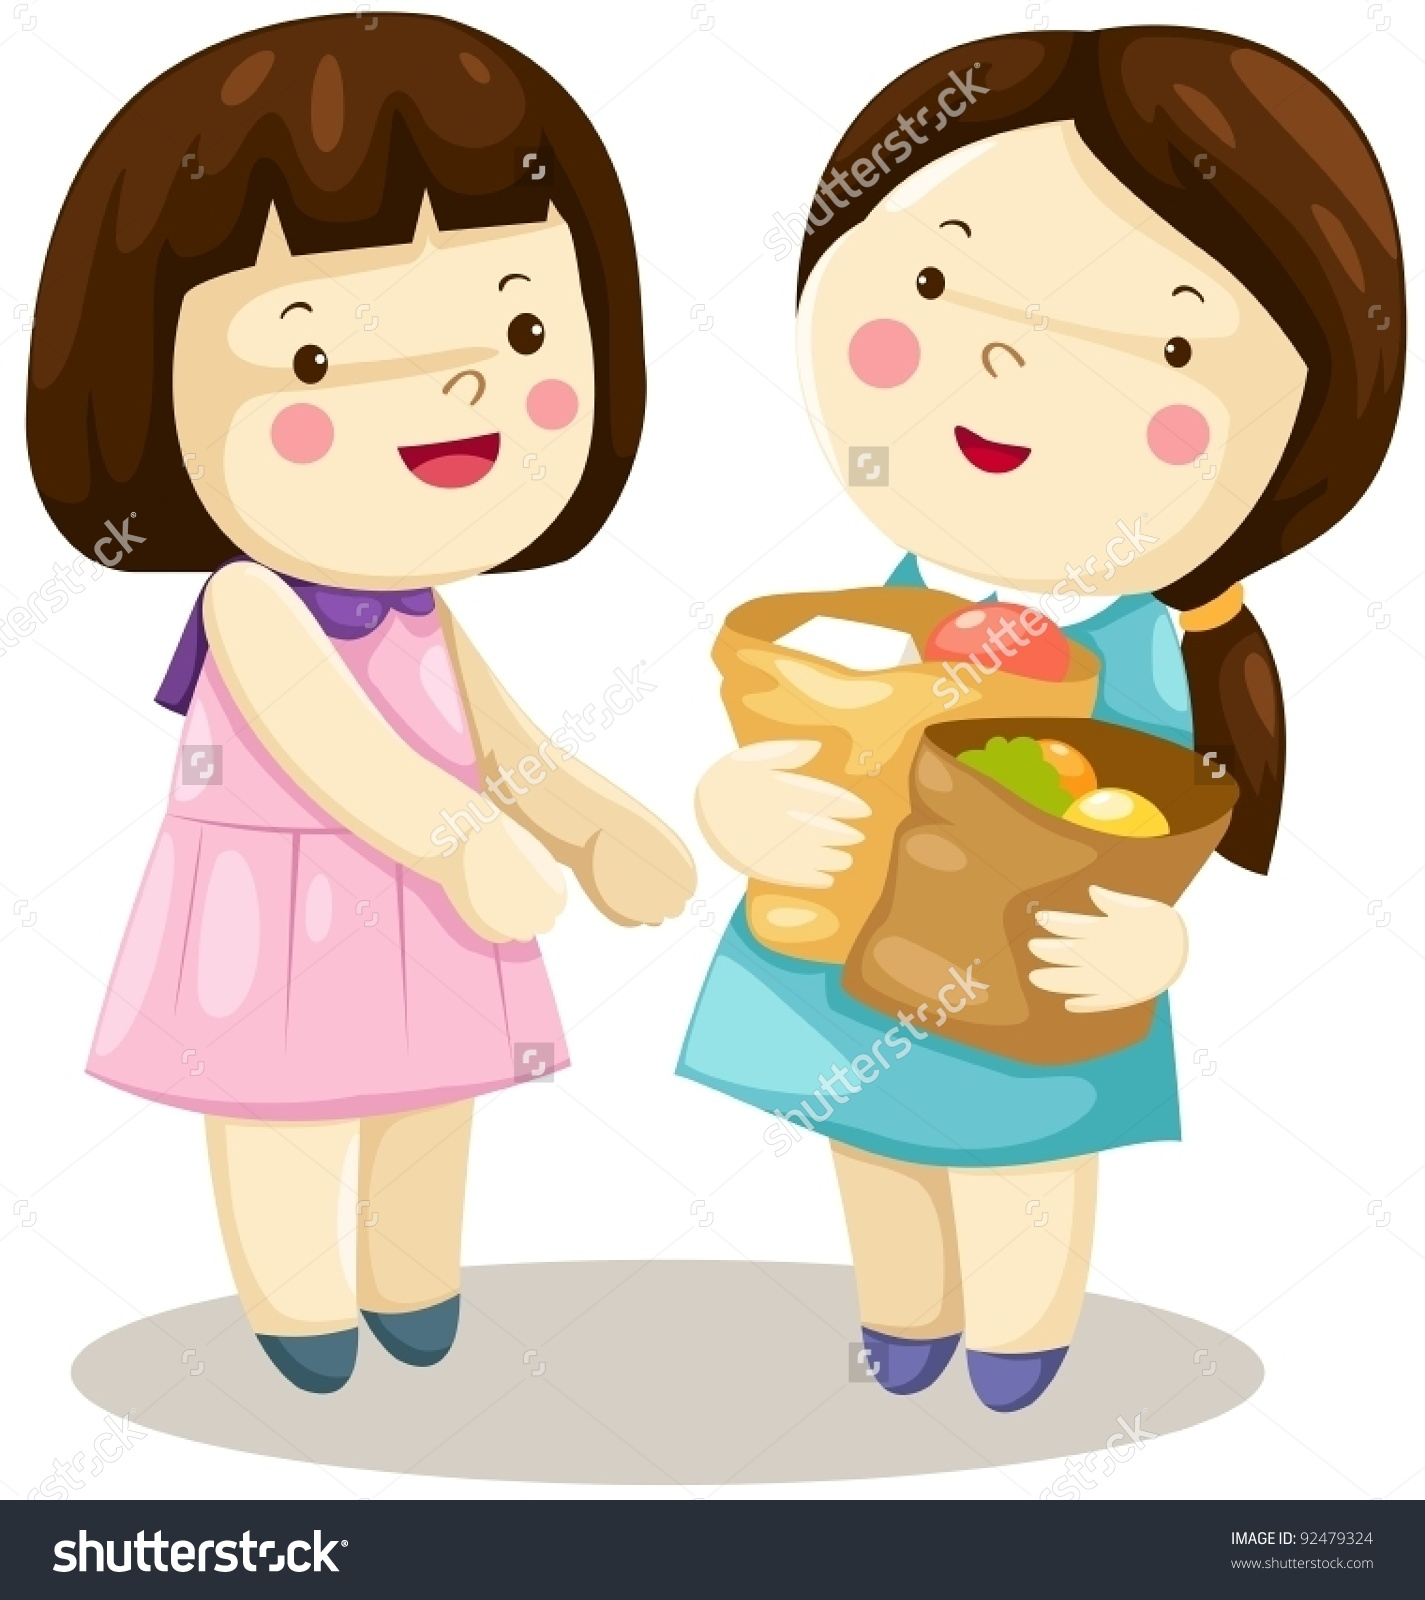 A Clipart Of A Girl Being Kind To Others.